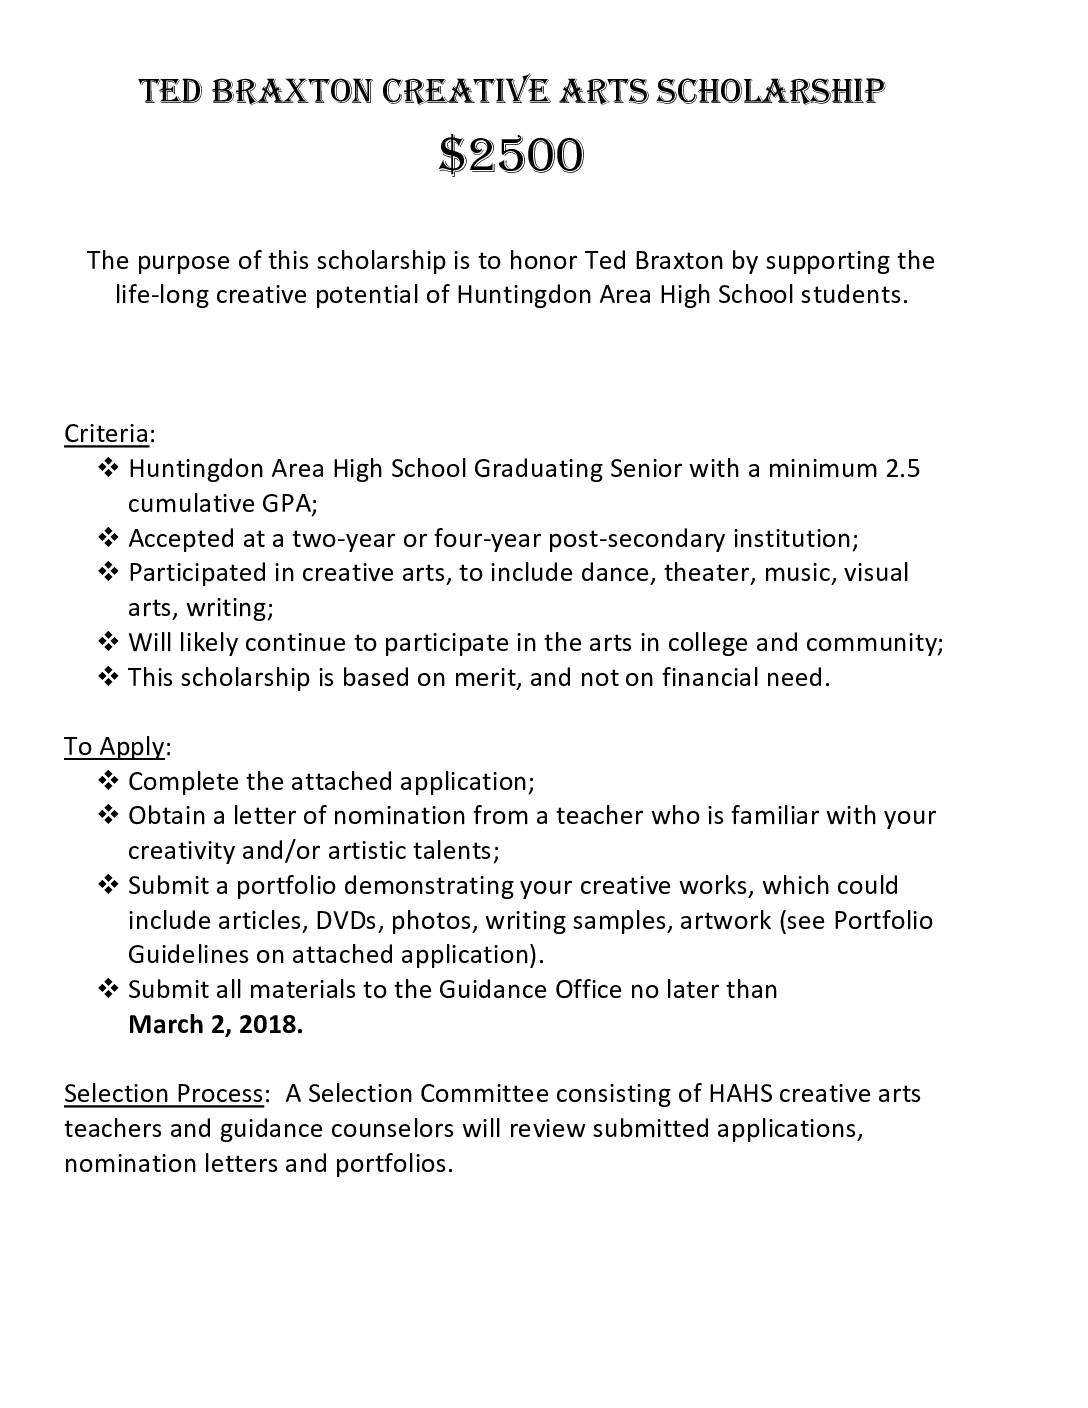 Ted Braxton Creative Arts Scholarship Application Huntingdon Area School District